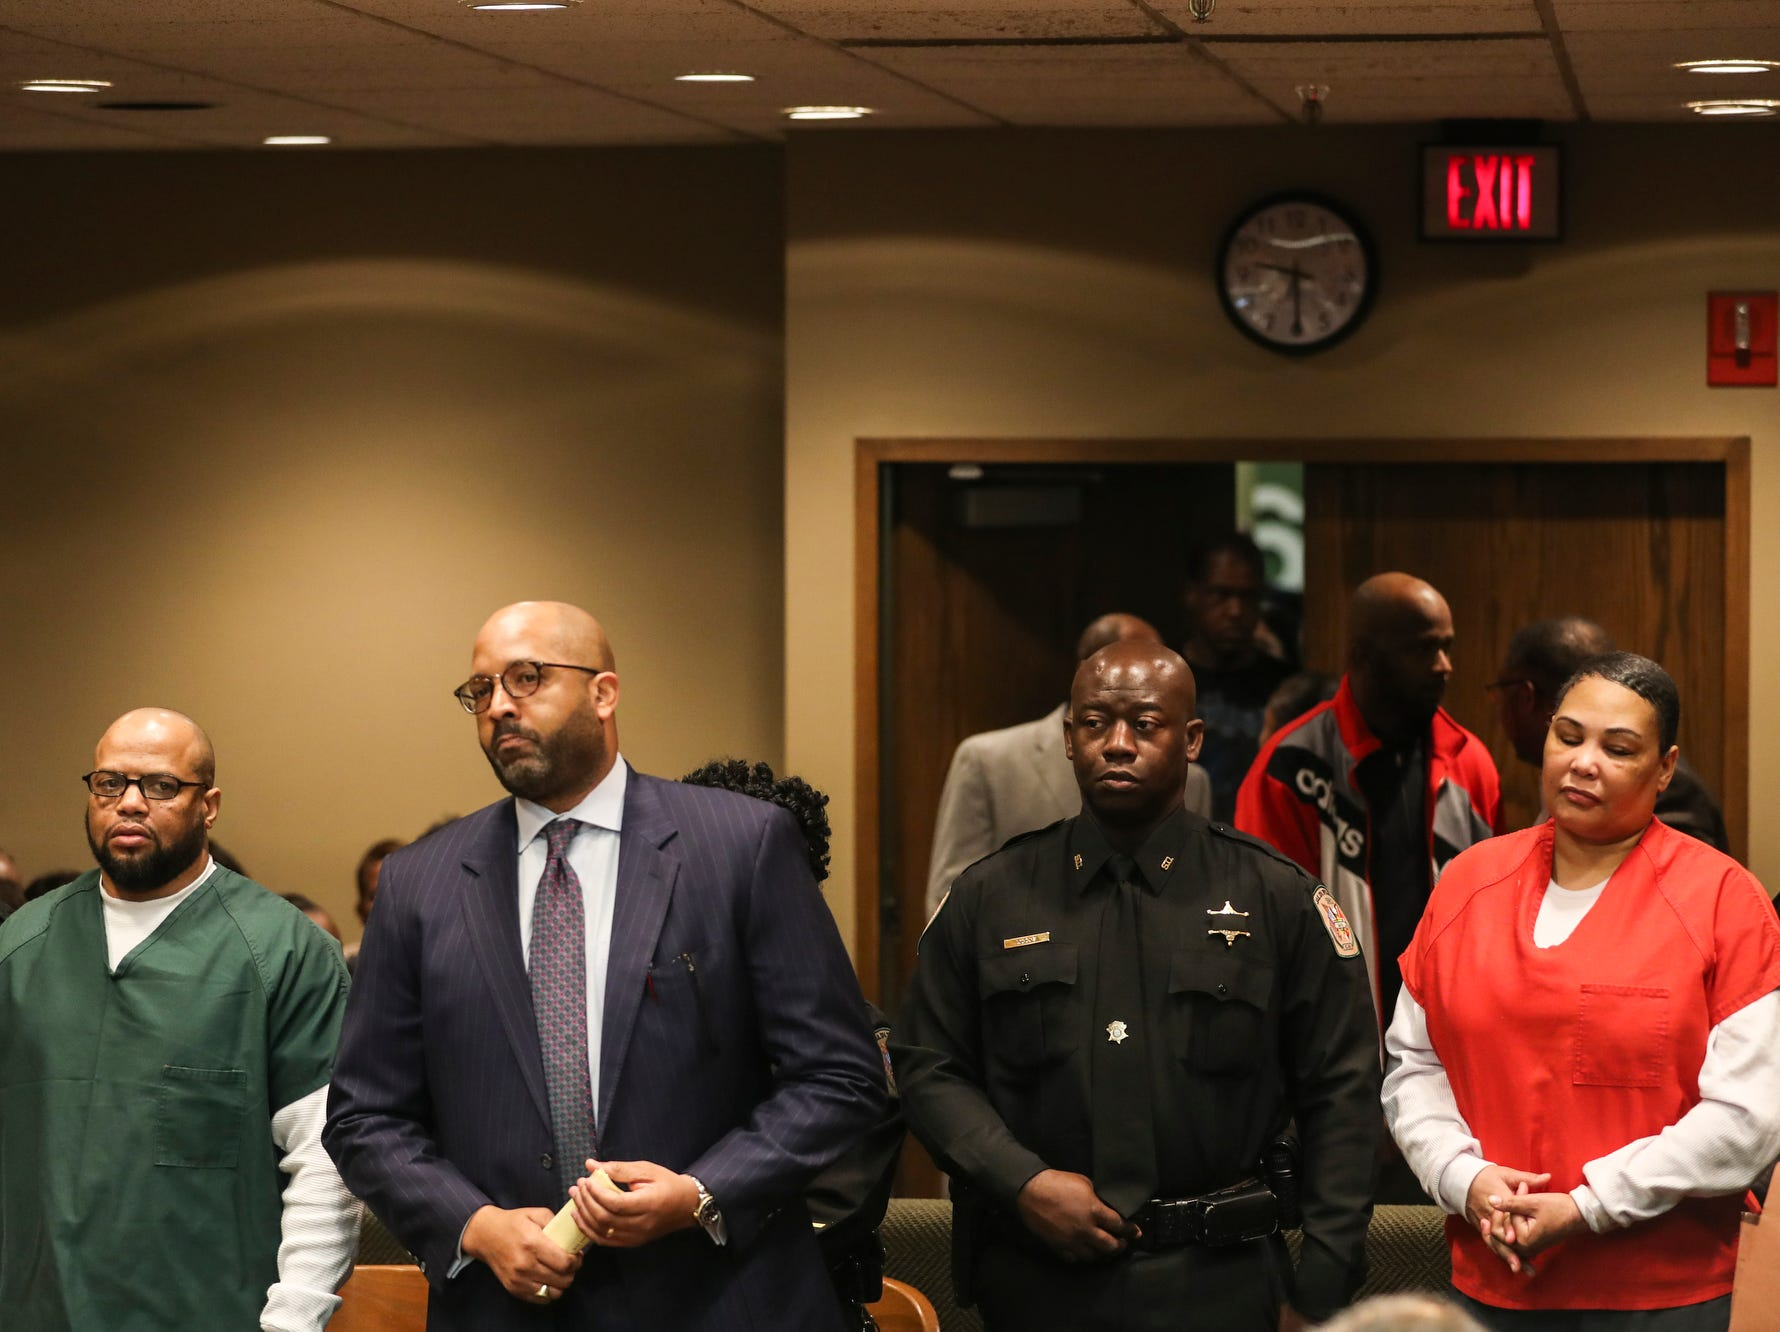 November 29 2018 - Billy Ray Turner, far left, and Sherra Wright, far right, appear in Judge Lee Coffee's courtroom on Thursday. Sherra Wright and Billy Ray Turner are charged with first-degree murder in Lorenzen Wright's July 2010 shooting death.